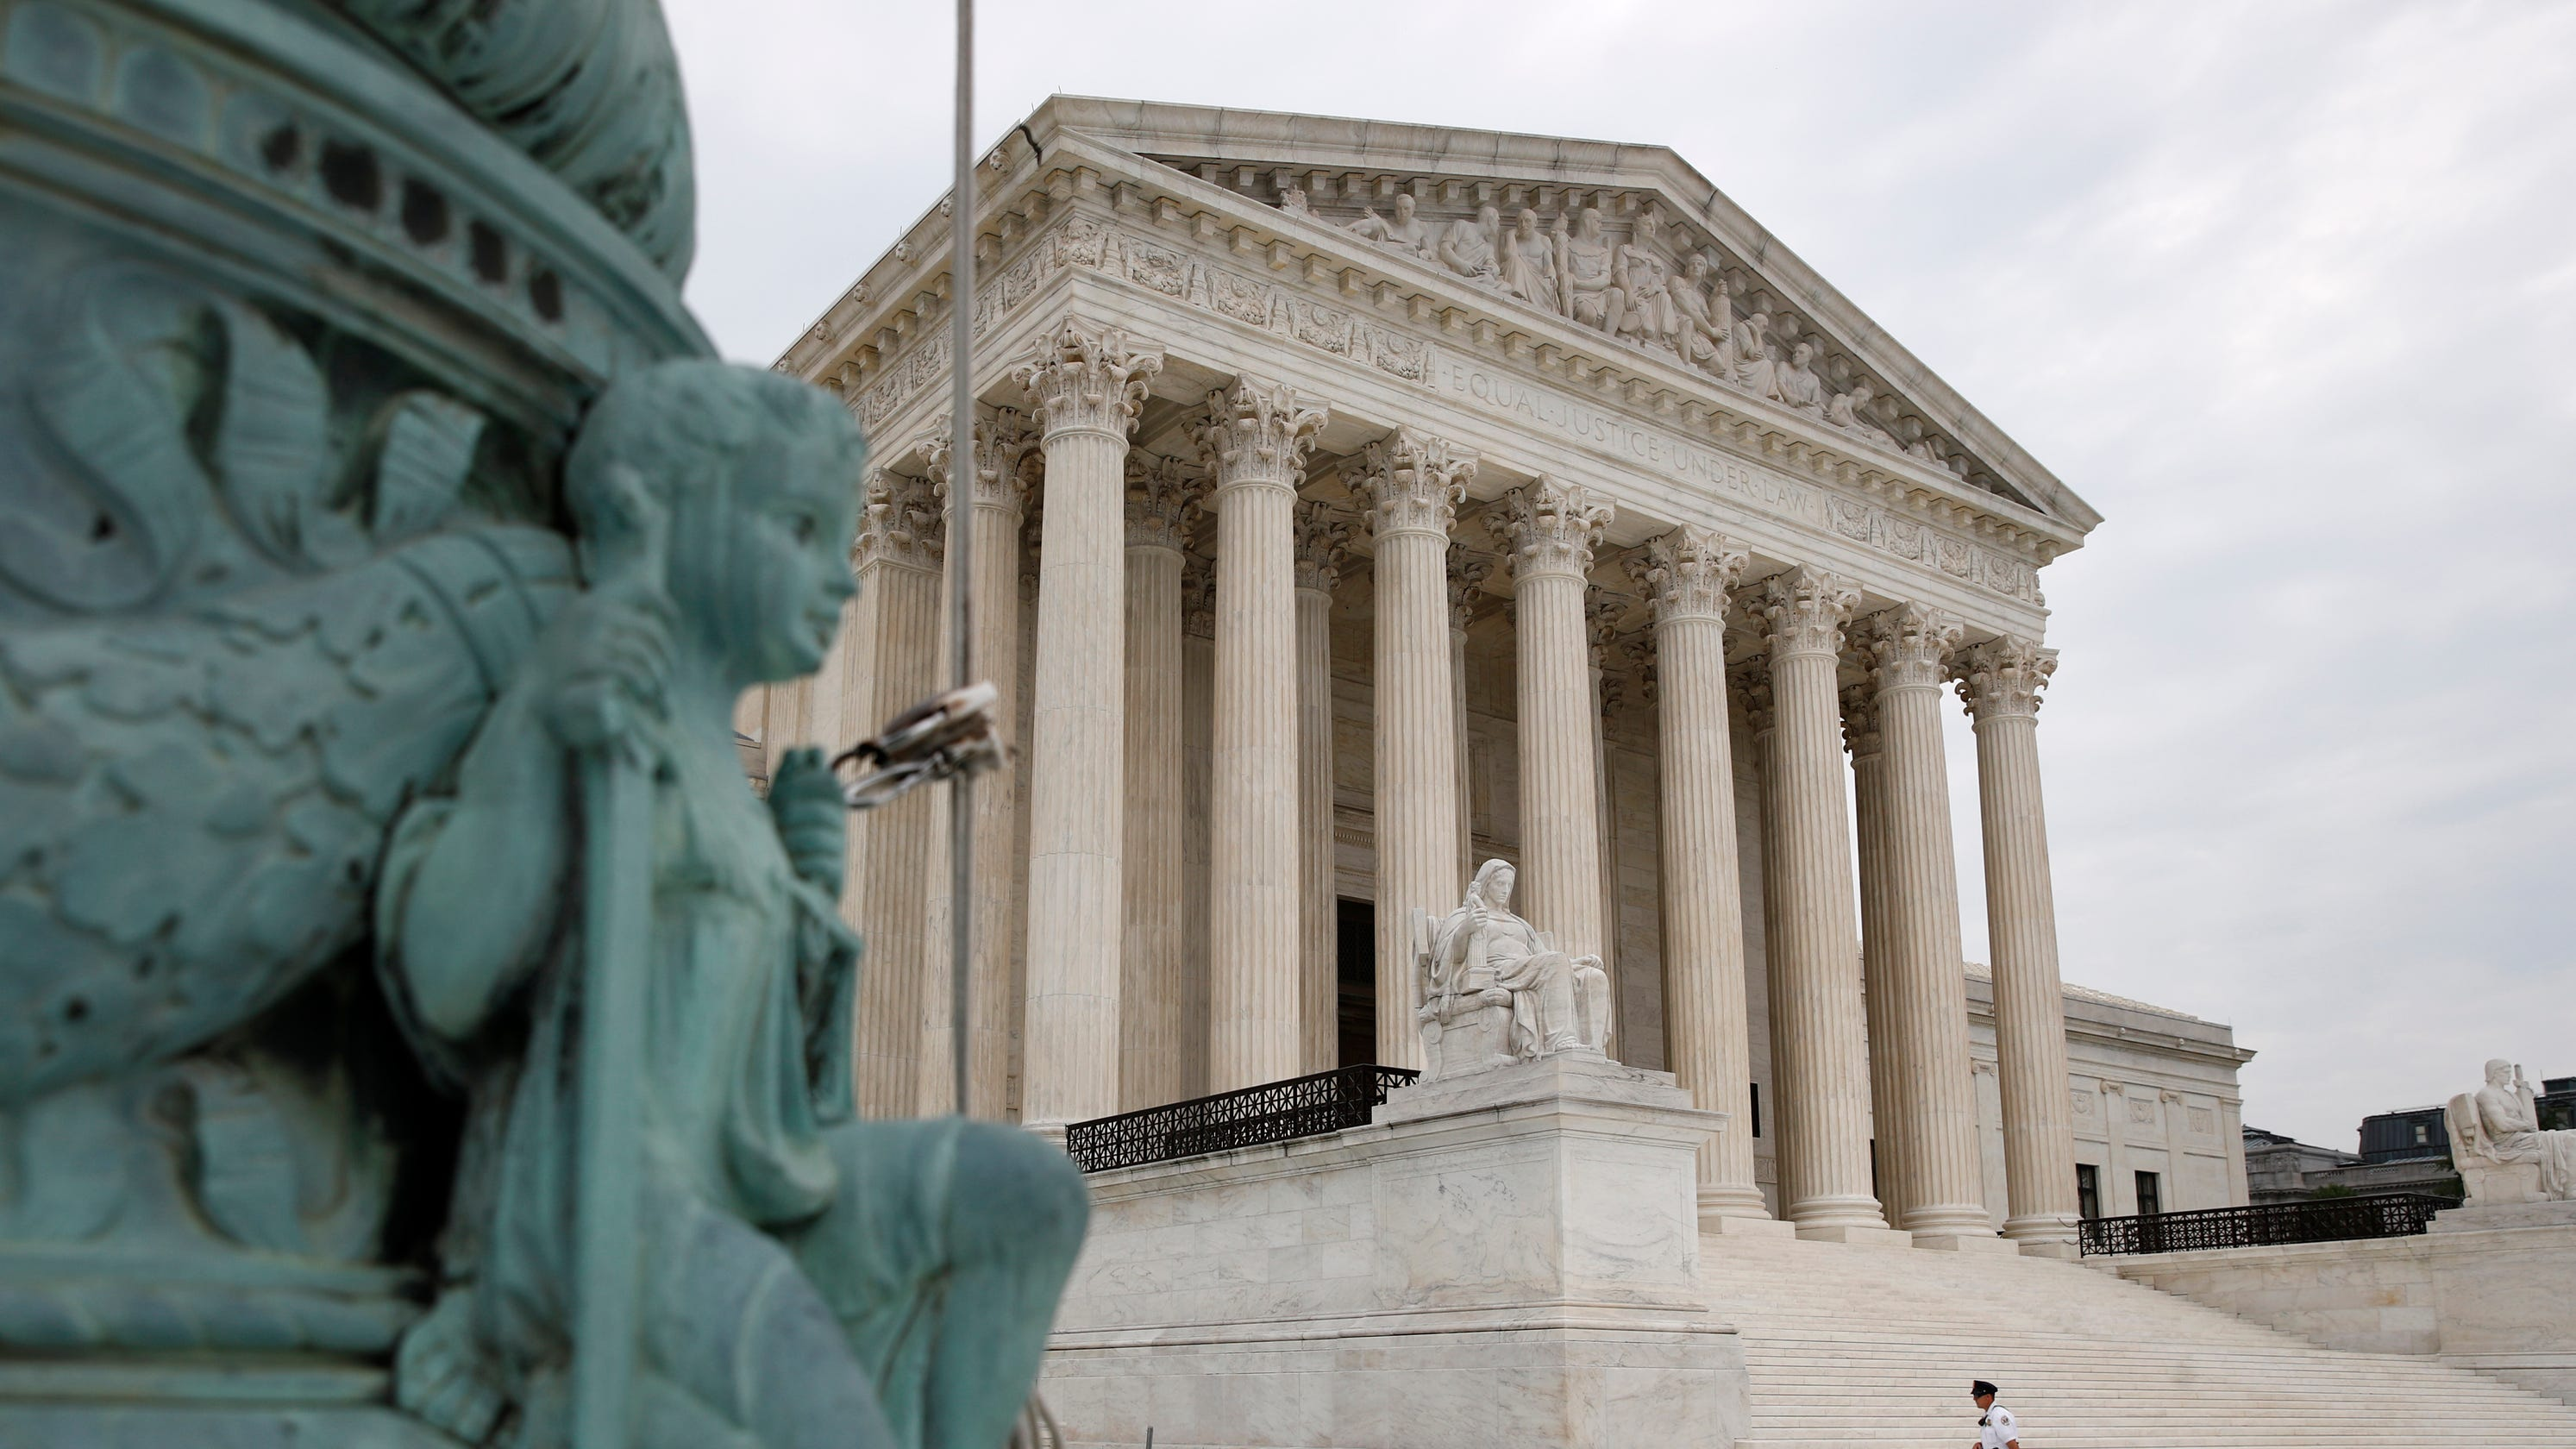 Trump and conservatives hijacked the Supreme Court. We're progressives ready to fight back.